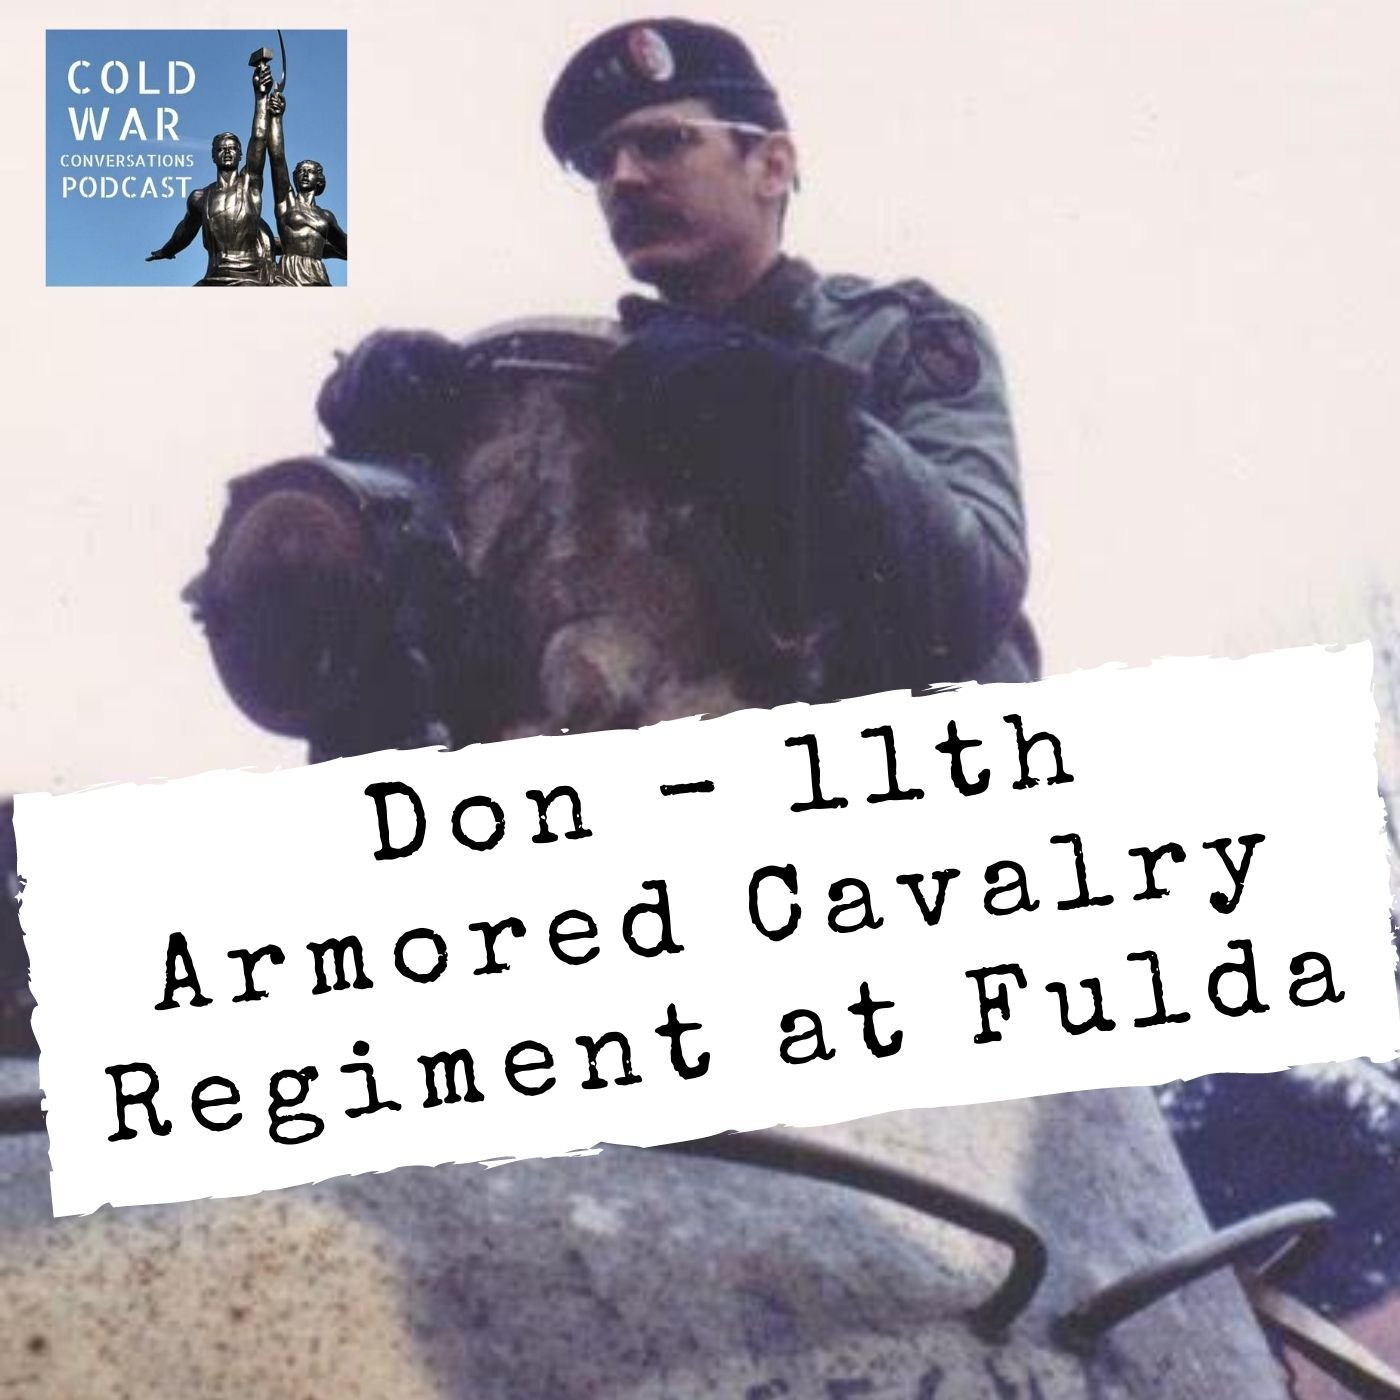 Don - 11th Armored Cavalry Regiment at Fulda (146)